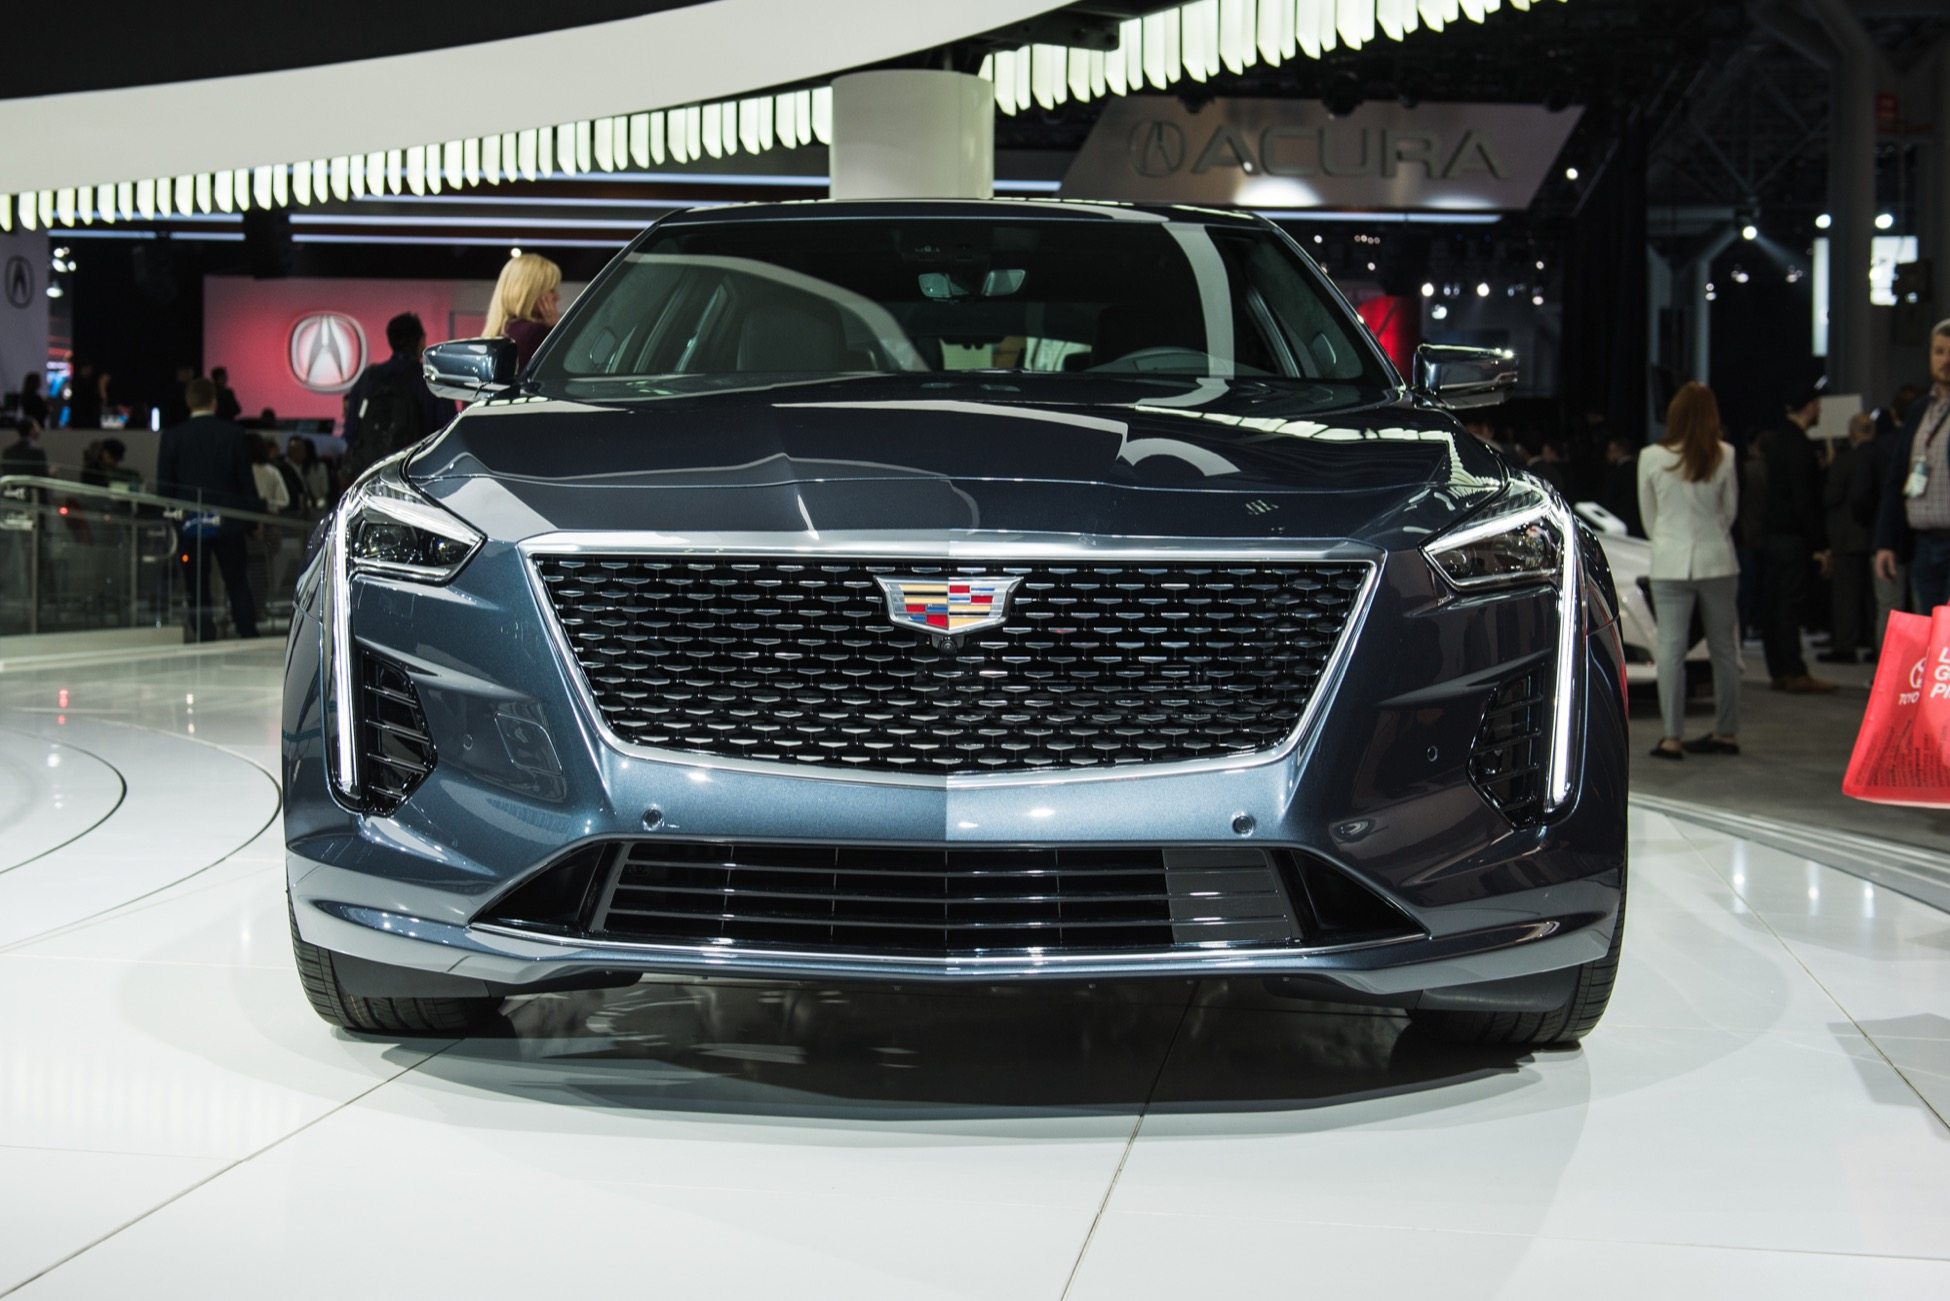 2019 Cadillac Ct6 Refresh Live Photo Gallery Gm Authority